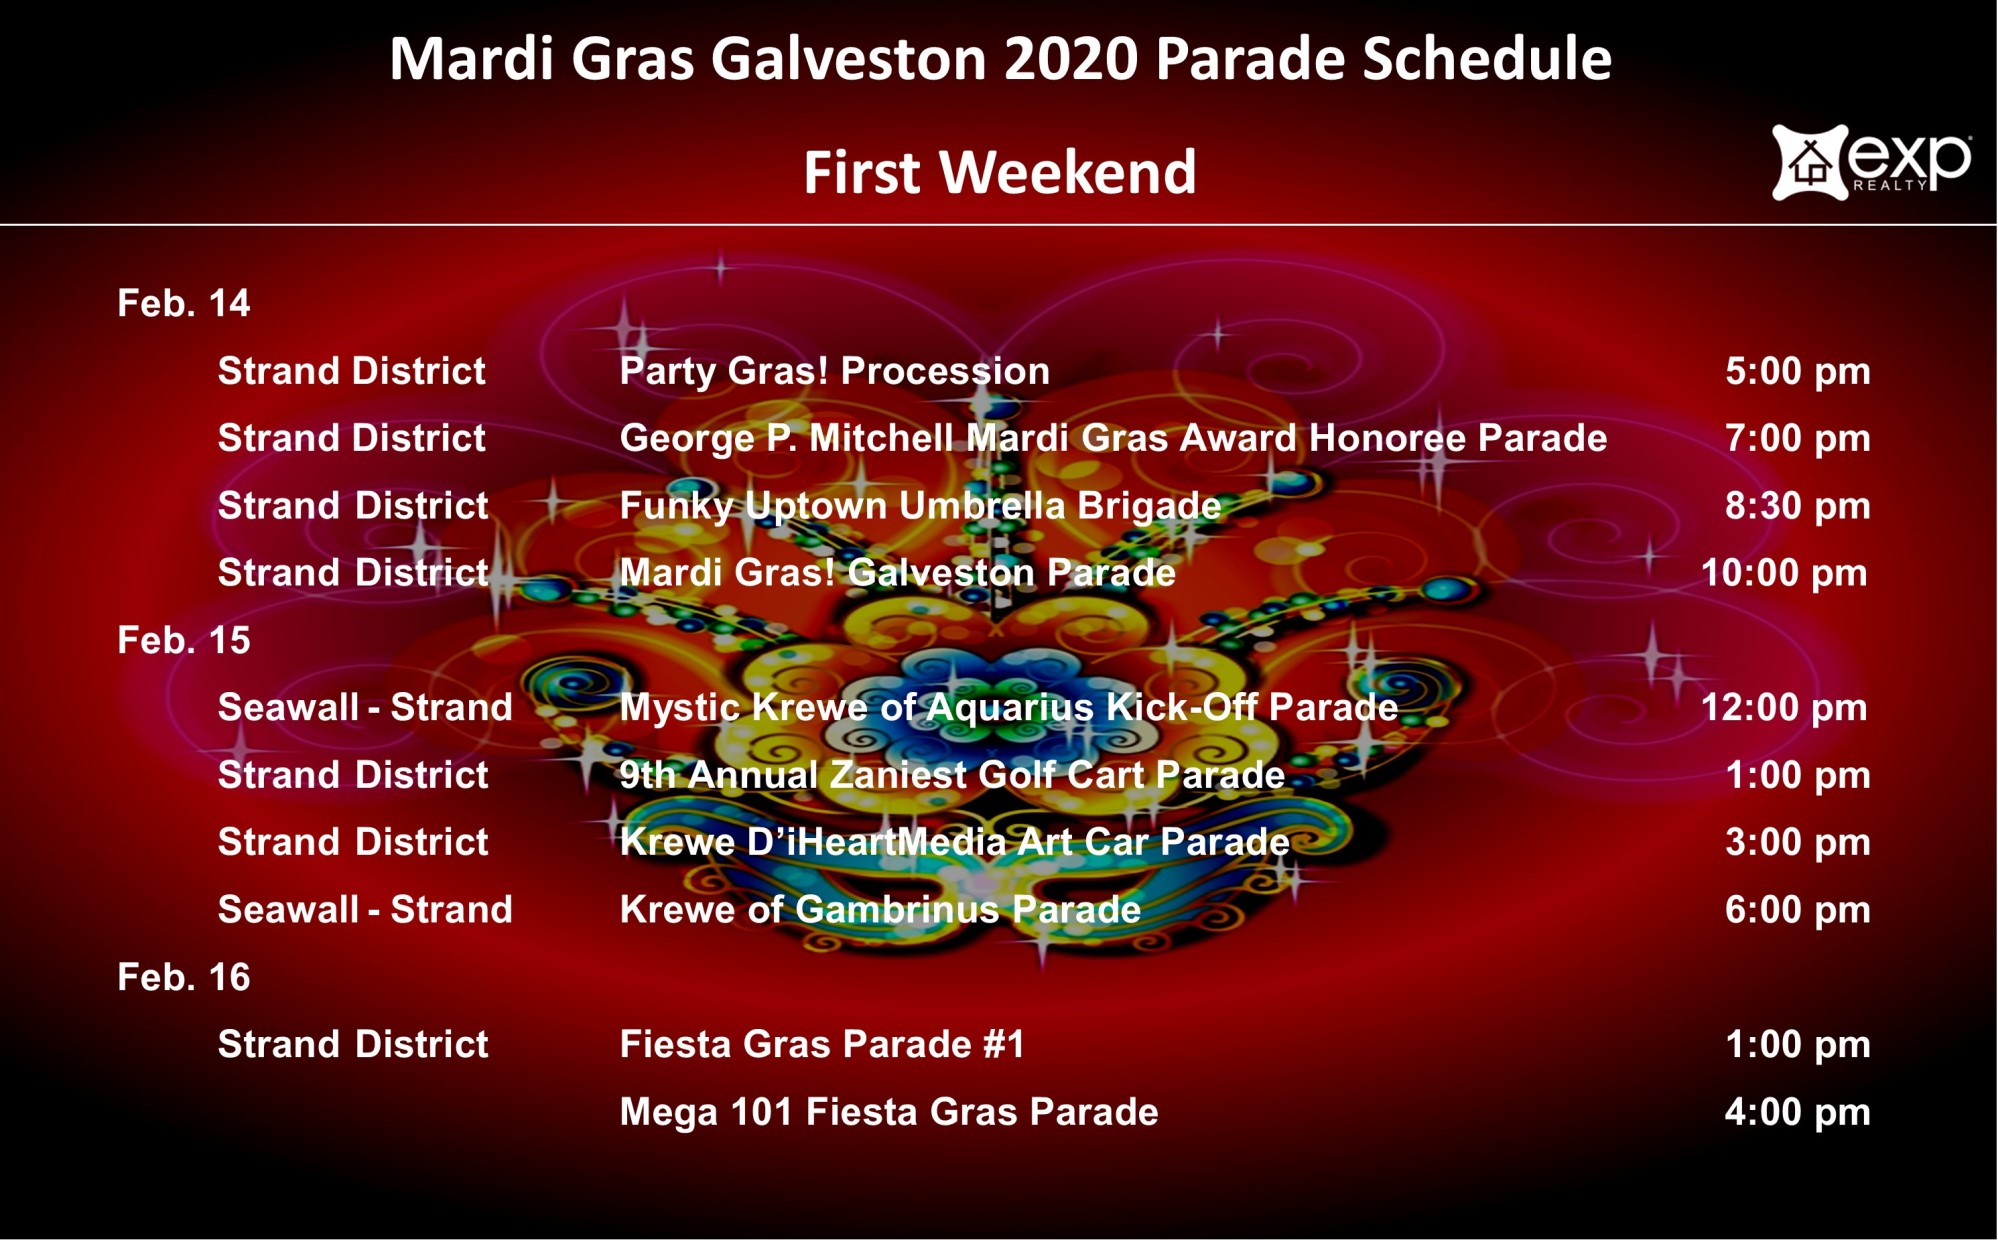 Mardi Gras First Weekend parade schedule